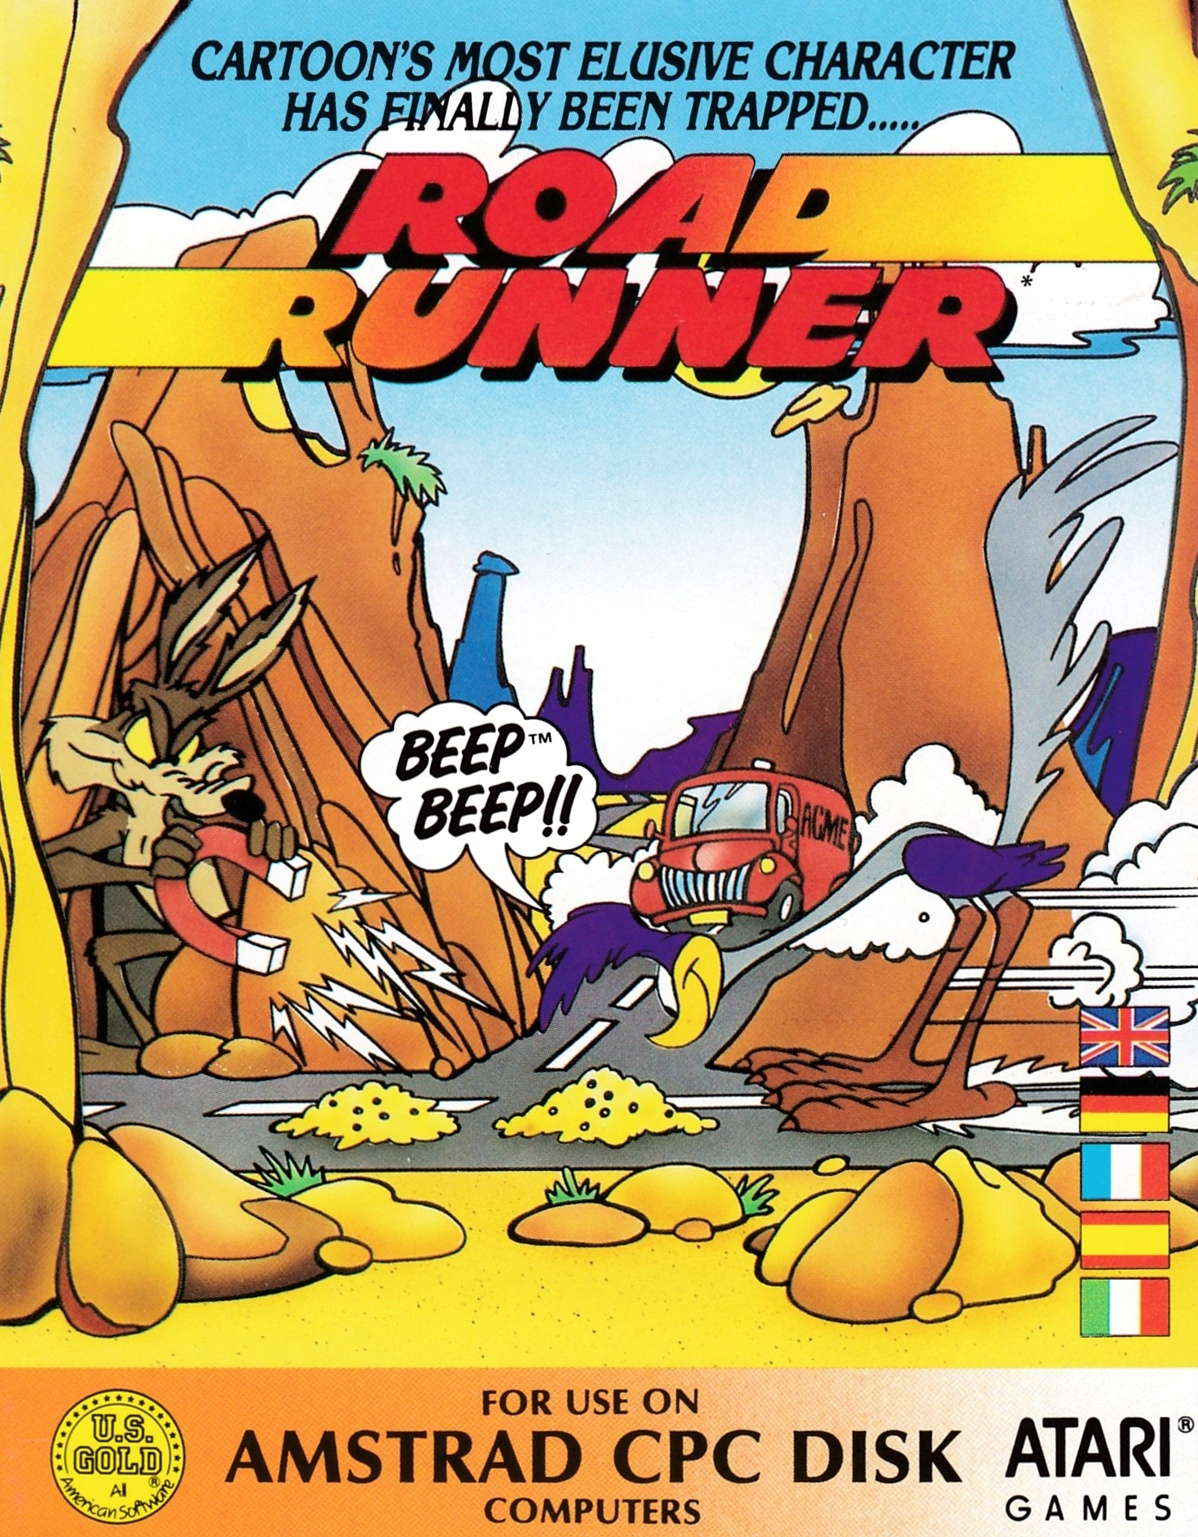 cover of the Amstrad CPC game Road Runner  by GameBase CPC